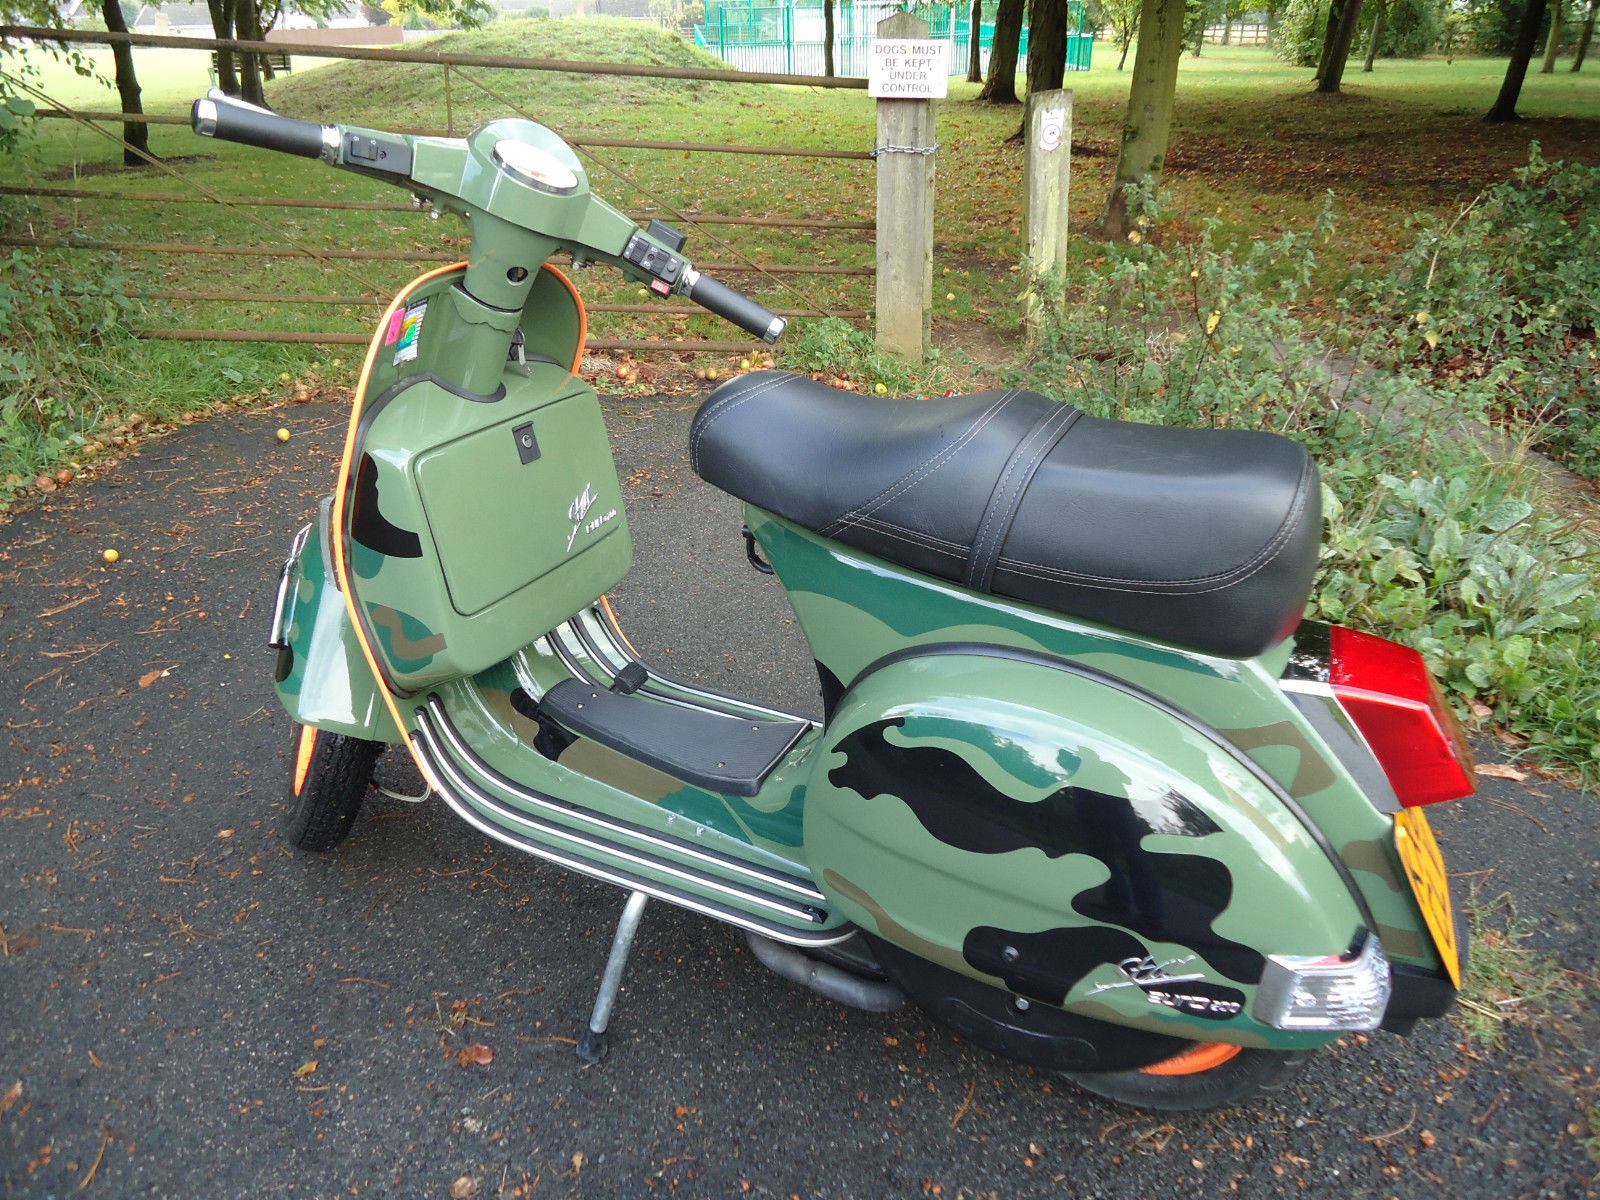 LML 200 Star EURO Scooter SPECIAL EDITION Not Vespa Lambretta Honda or  Suzuki